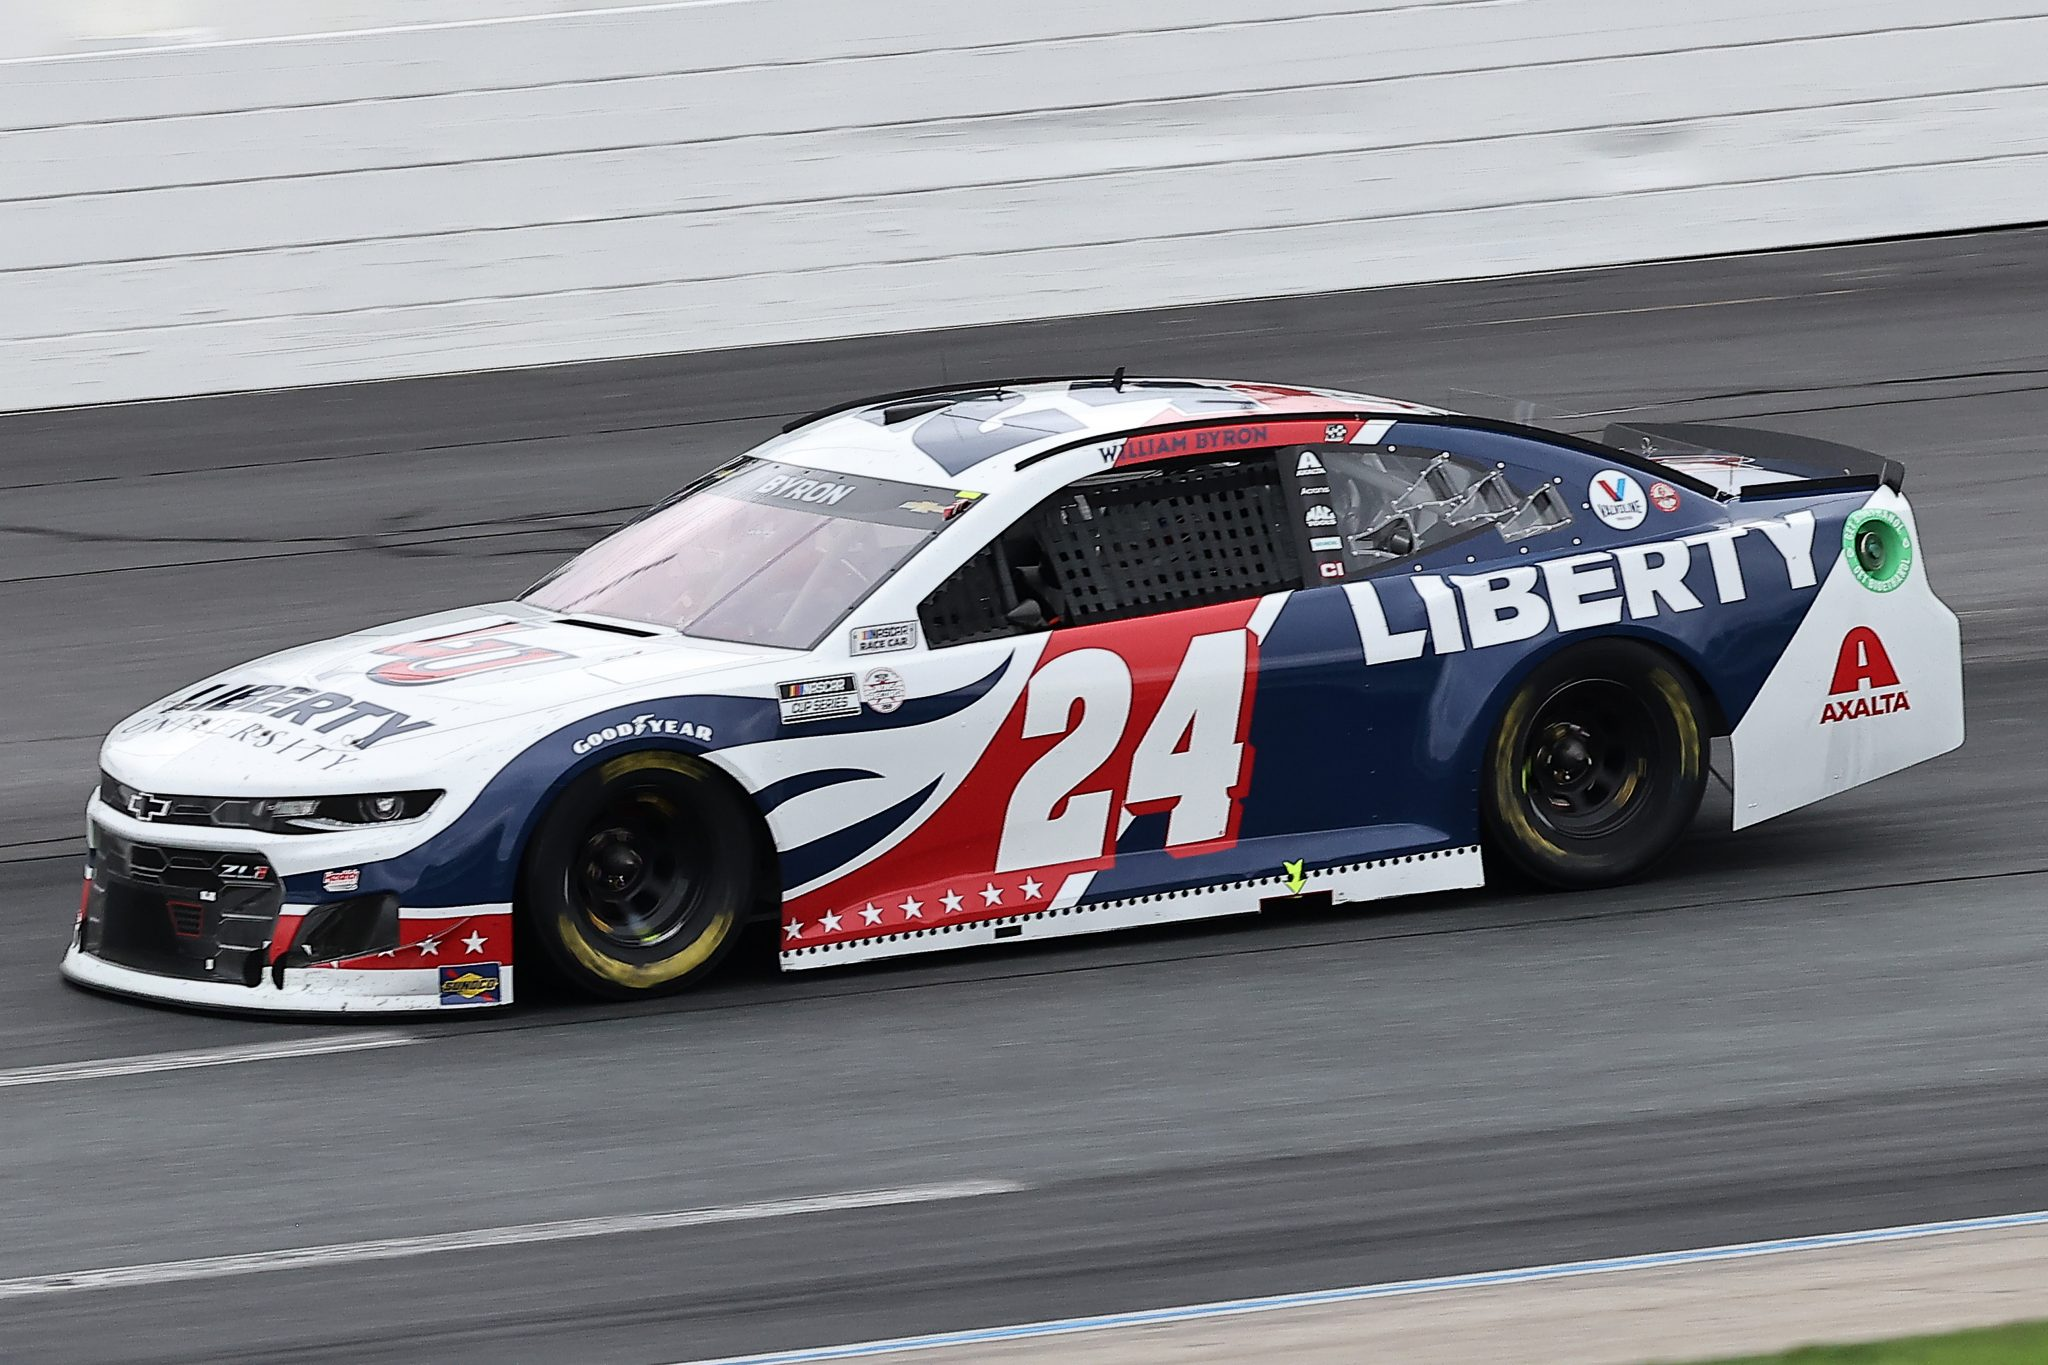 LOUDON, NEW HAMPSHIRE - JULY 18: William Byron, driver of the #24 Liberty University Chevrolet, drives during the NASCAR Cup Series Foxwoods Resort Casino 301 at New Hampshire Motor Speedway on July 18, 2021 in Loudon, New Hampshire. (Photo by James Gilbert/Getty Images)   Getty Images